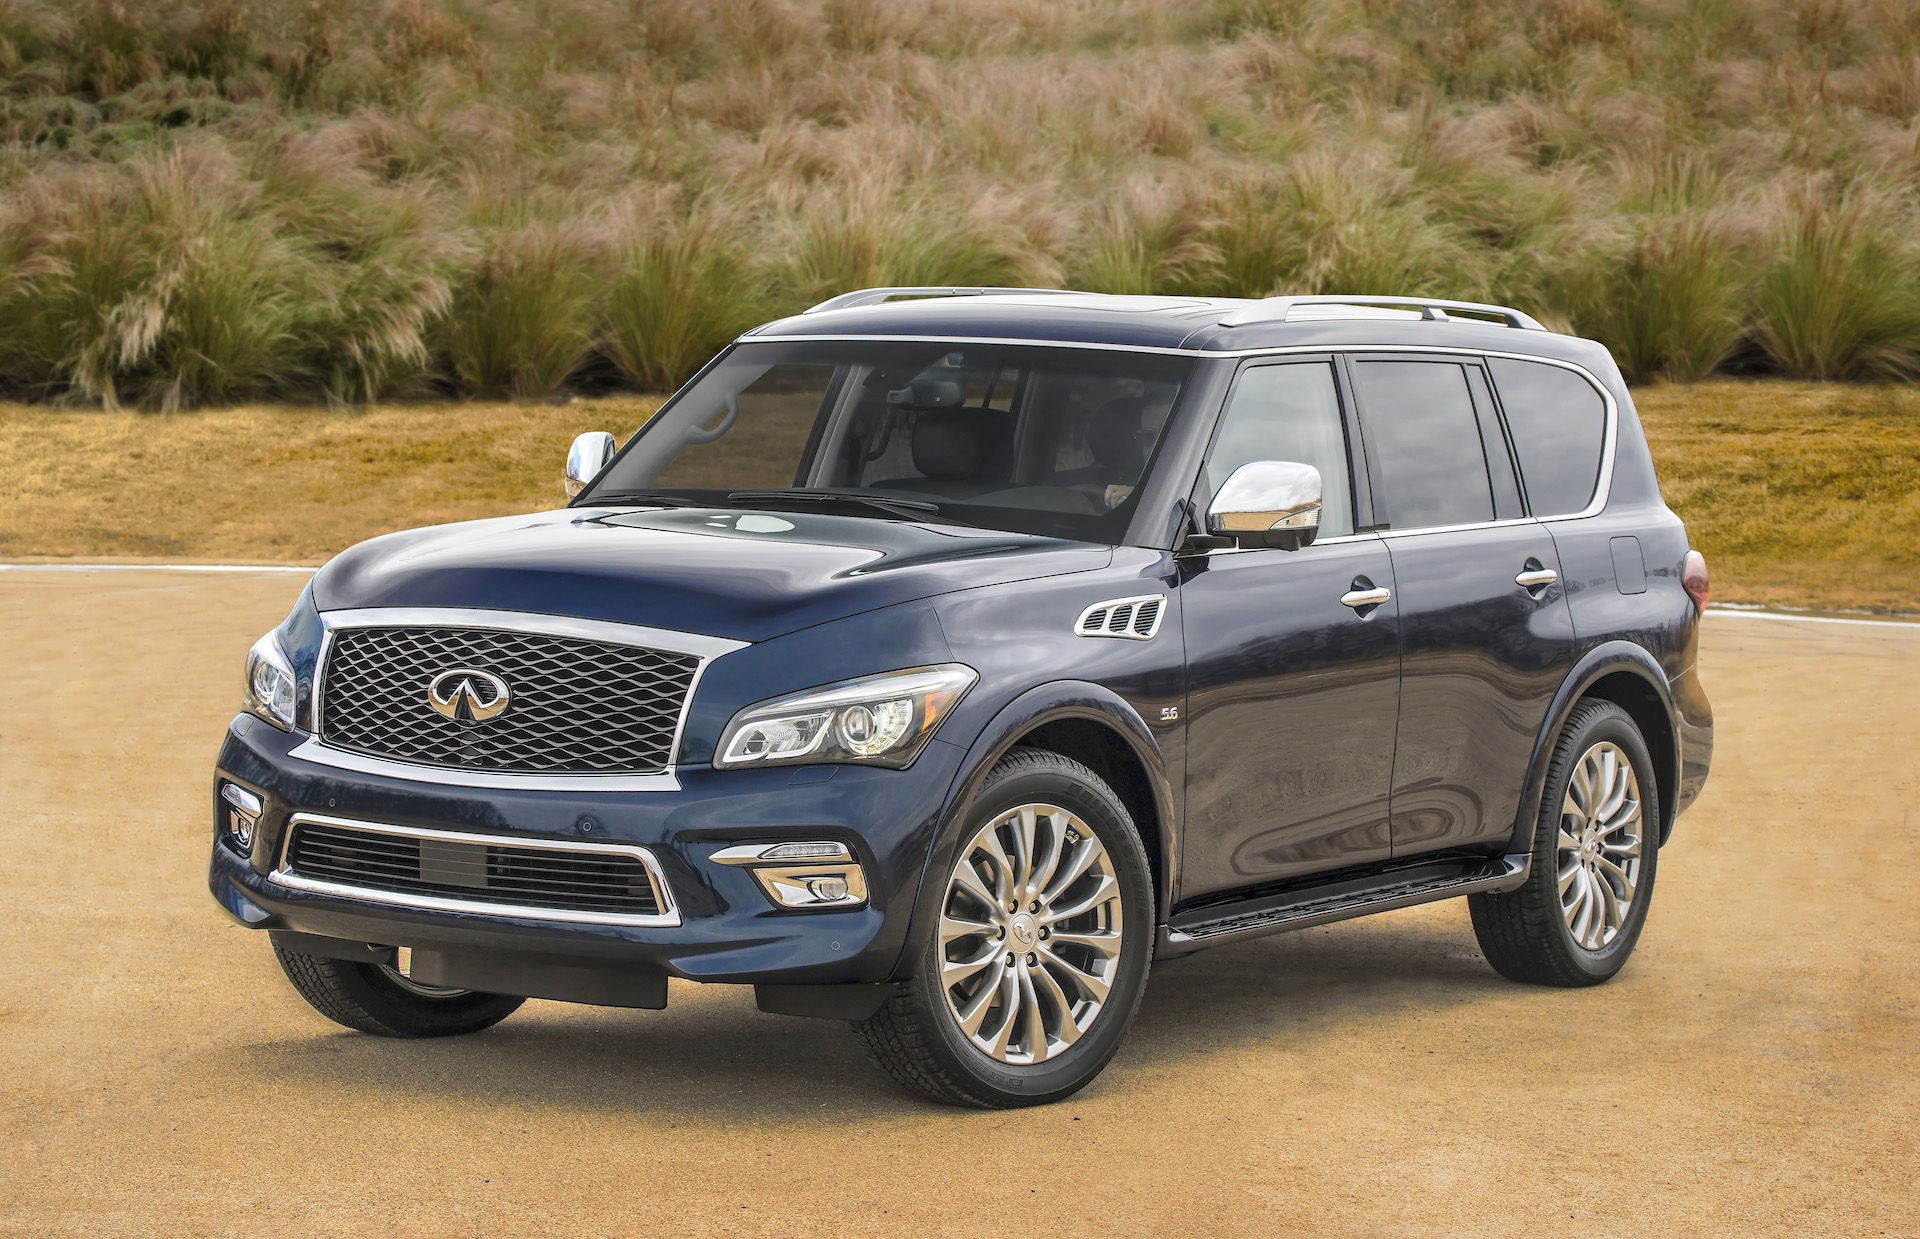 Get the latest reviews of the 2017 infiniti qx80 find prices buying advice